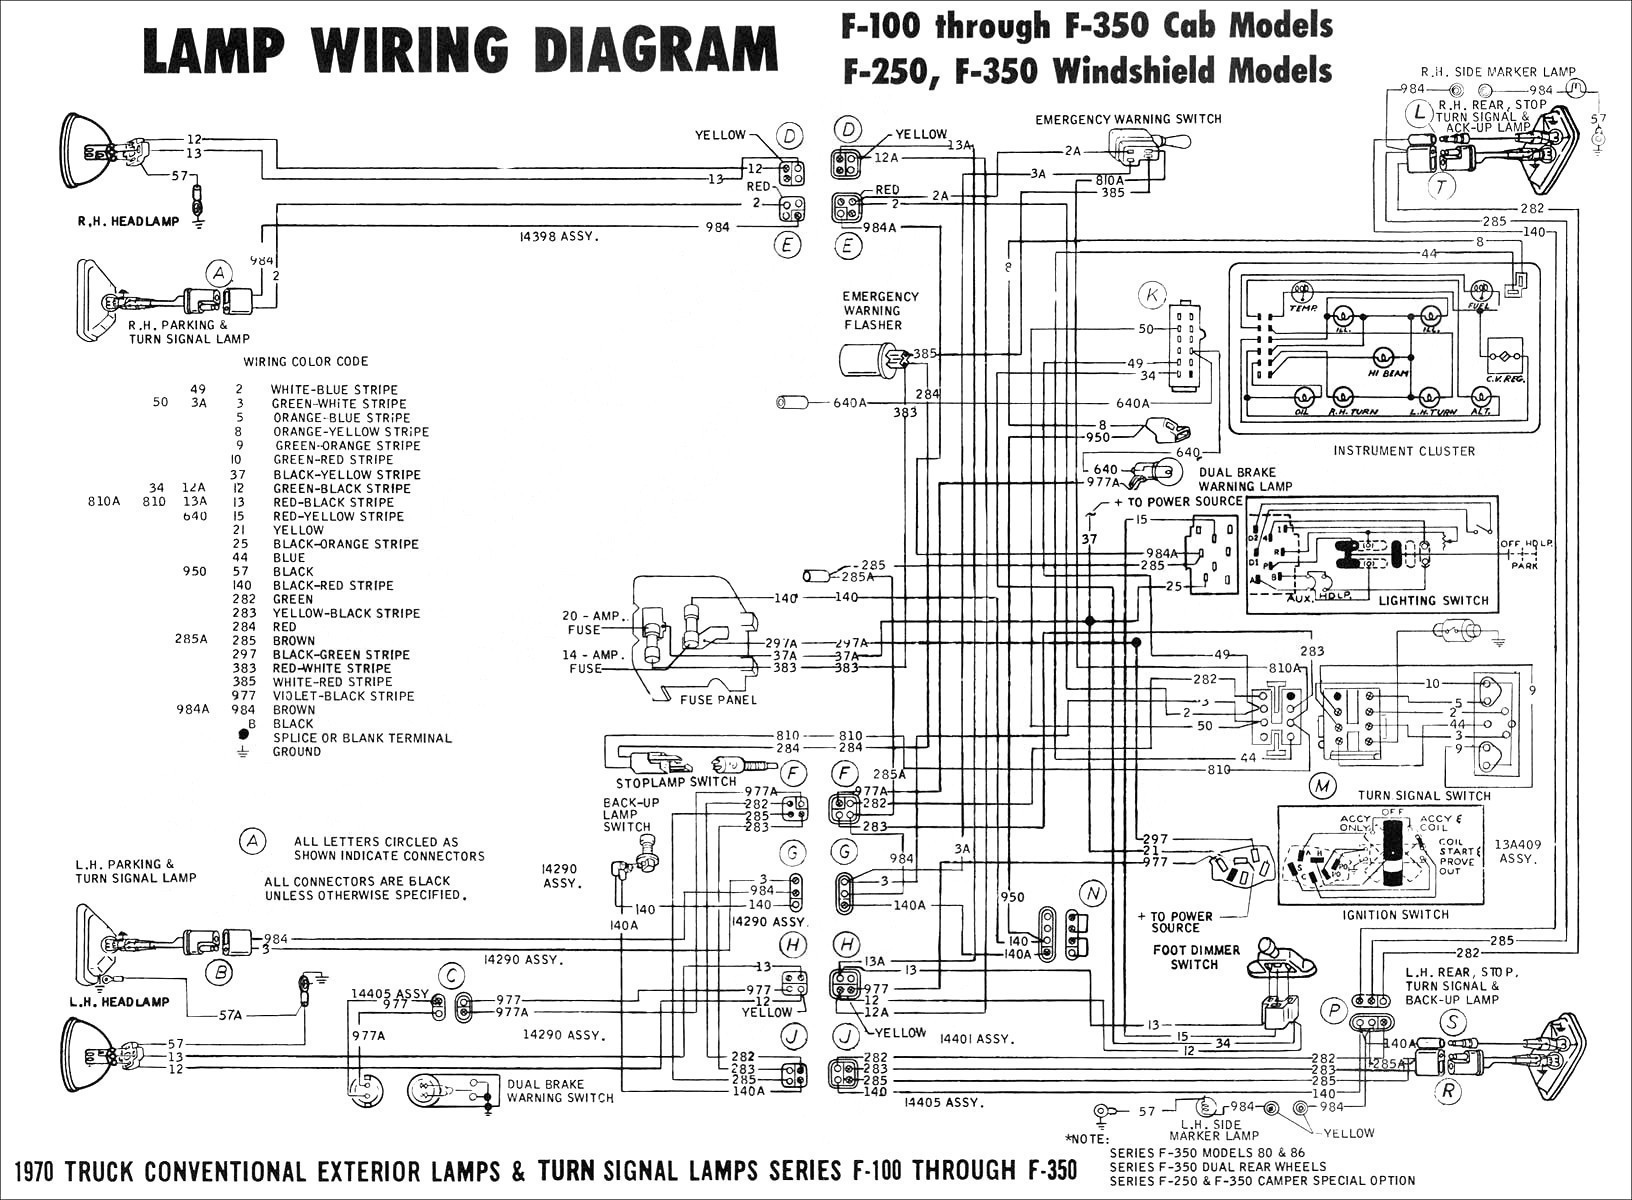 97 Honda Accord Engine Diagram 96 Dodge Wire Diagram Premium Wiring Diagram Design Of 97 Honda Accord Engine Diagram 96 Dodge Wire Diagram Premium Wiring Diagram Design